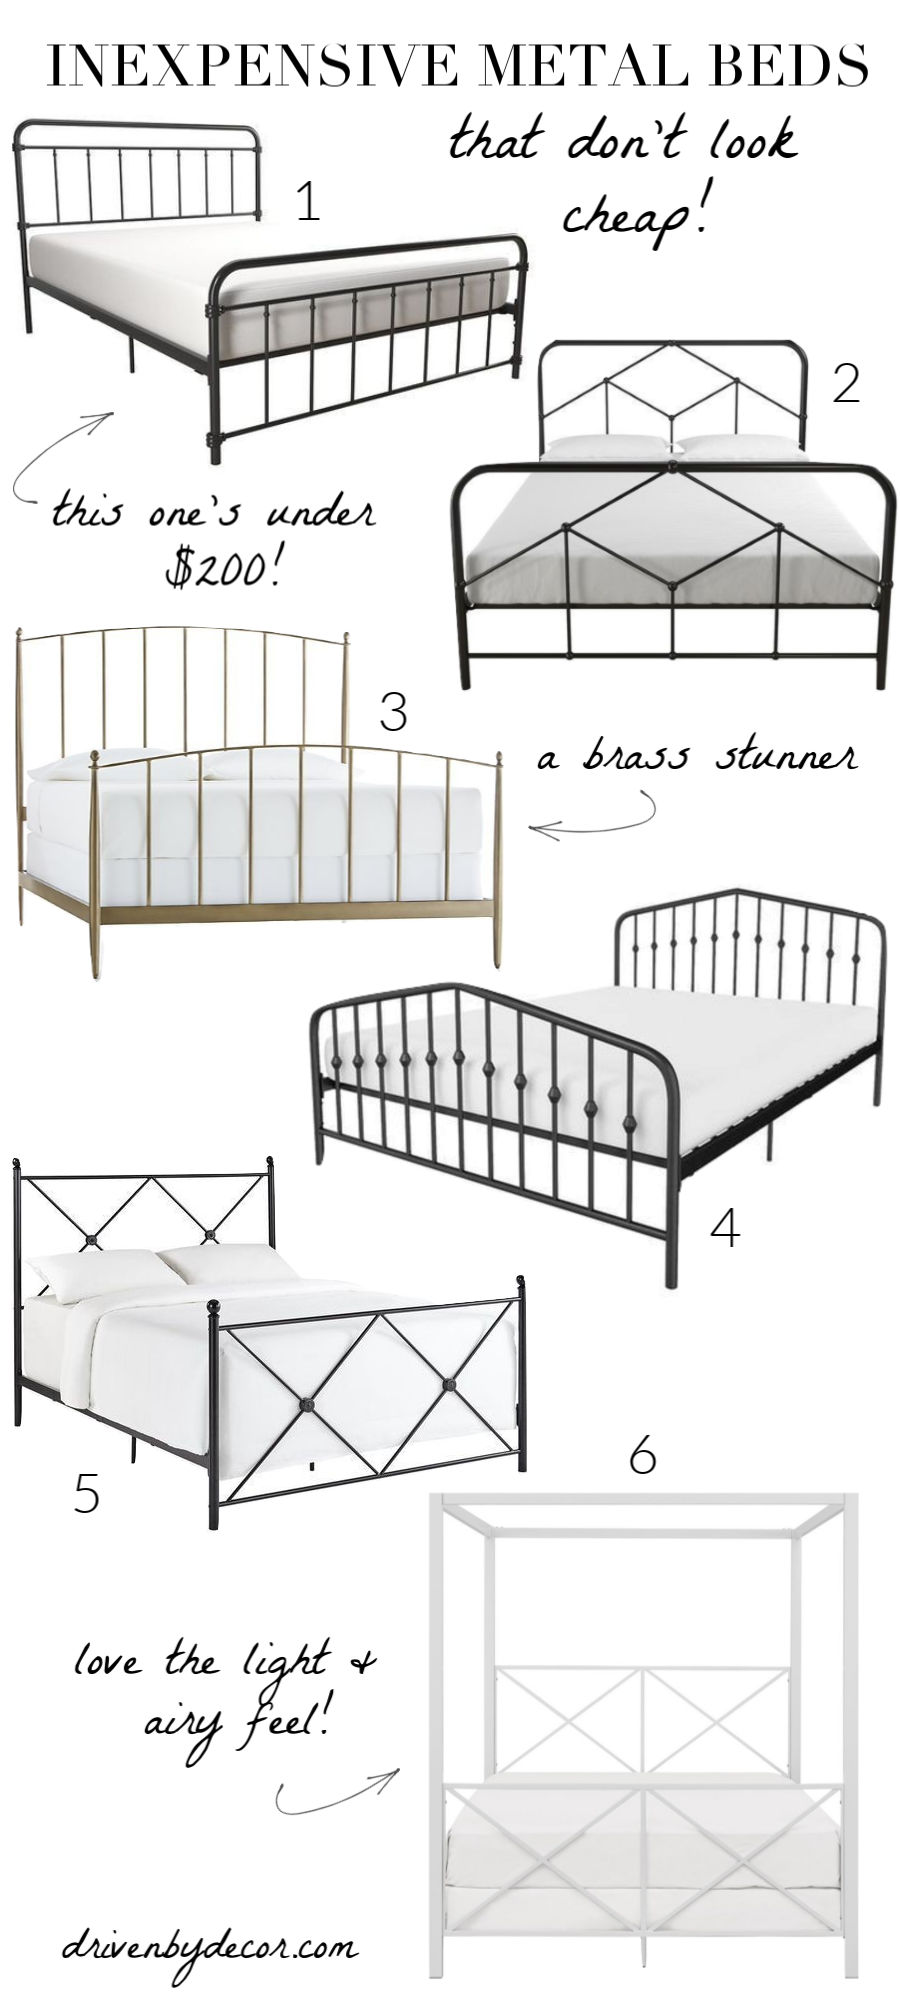 Love these gorgeous iron & metal beds that are pretty cheap but super stylish!